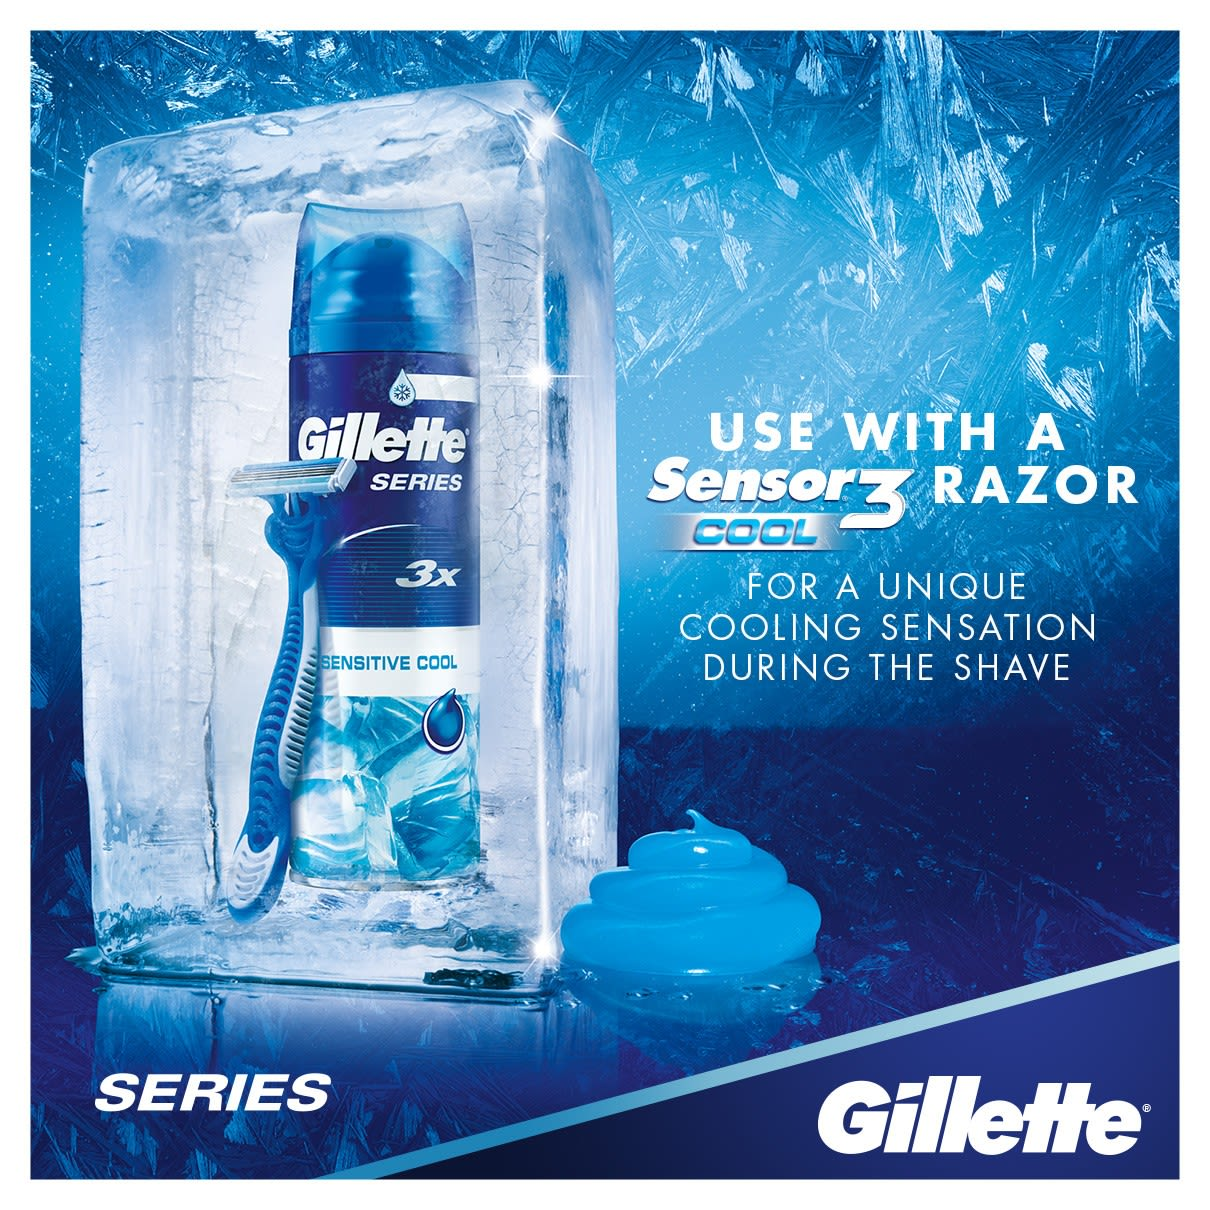 Use With A Sensor3 Cool Razor For a Unique Cooling Sensation | Gillette Series Sensitive Cool Shave Gel